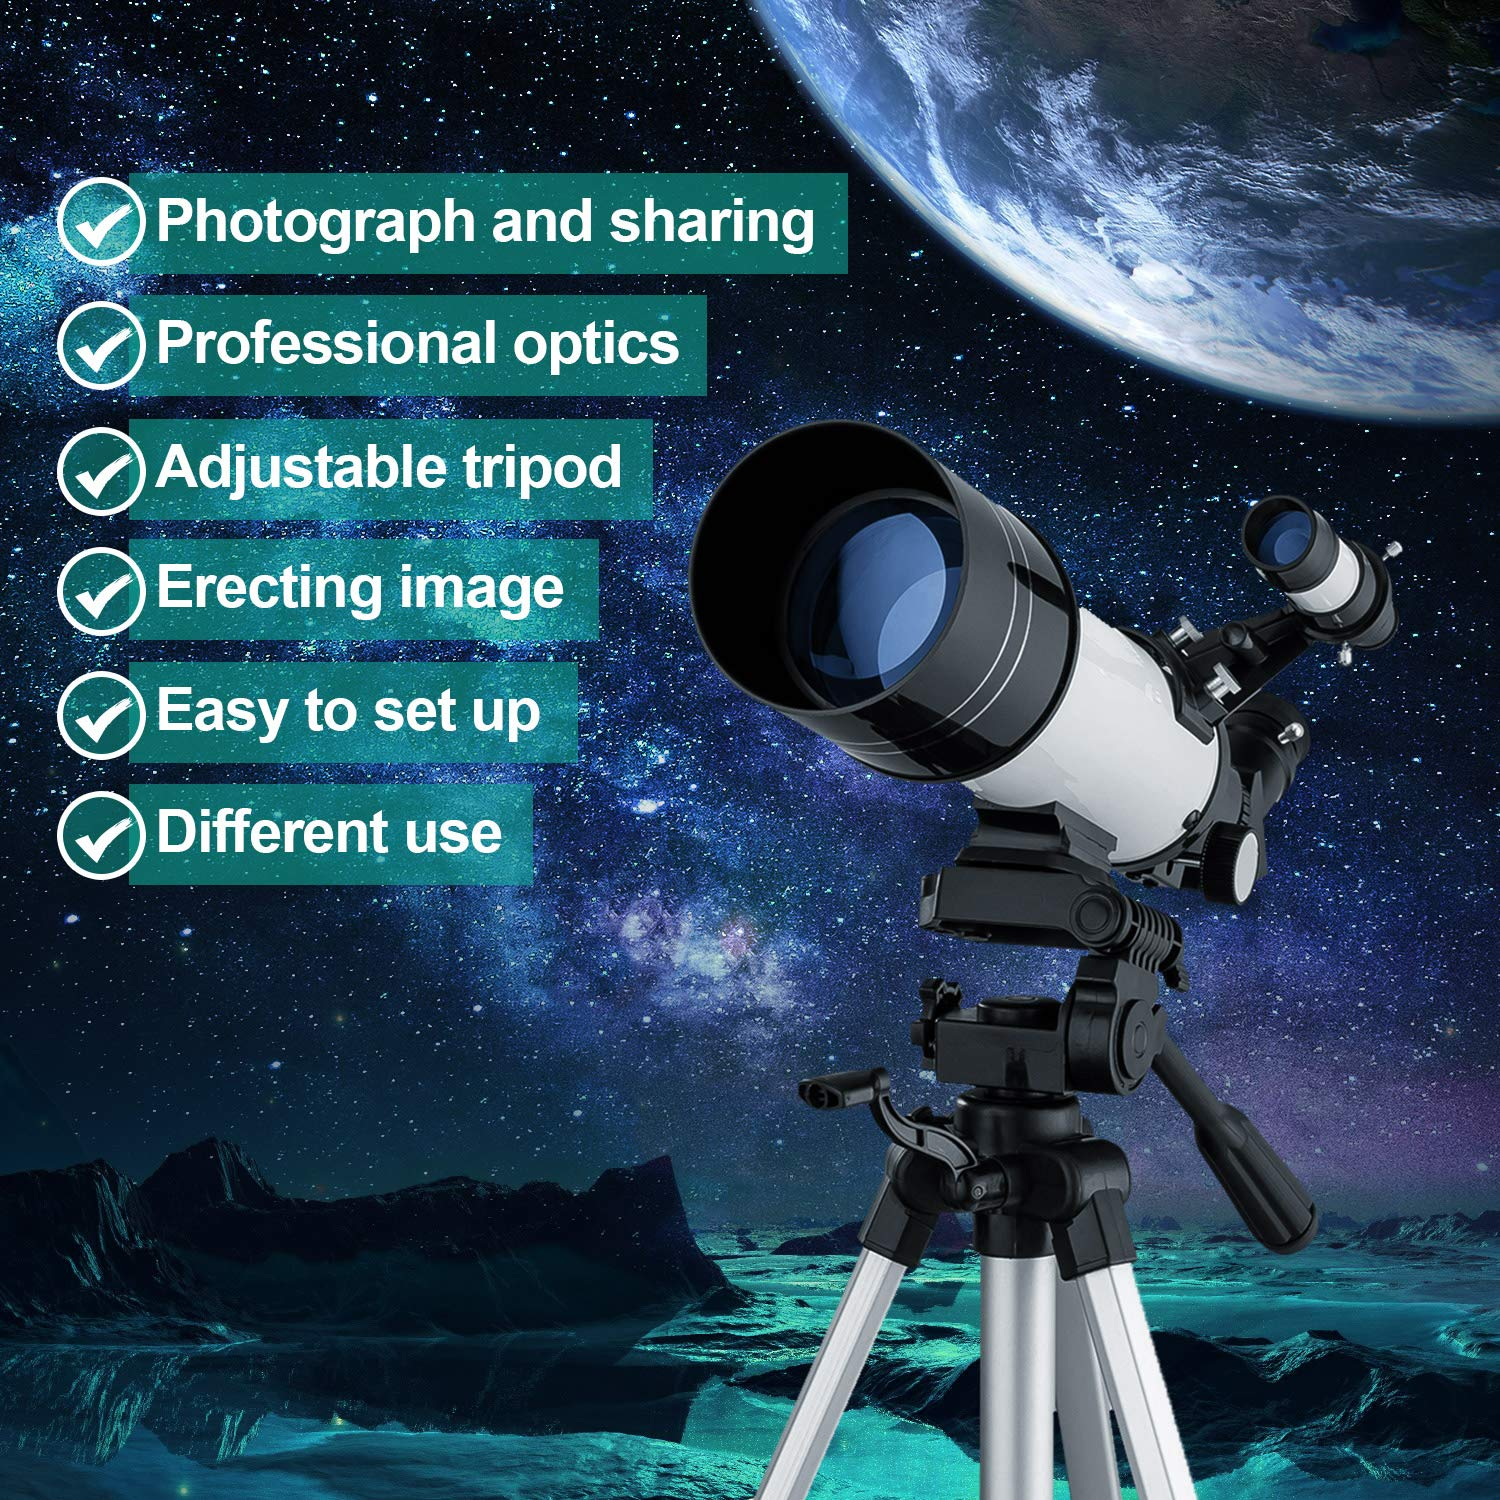 MAXLAPTER Telescope for Kids and Beginners, 70mm Travel Refractor Telescope for Astronomy with Adjustable Tripod, Smartphone Adapter, Camera Shutter Wire Control, Backpack by MAXLAPTER (Image #7)